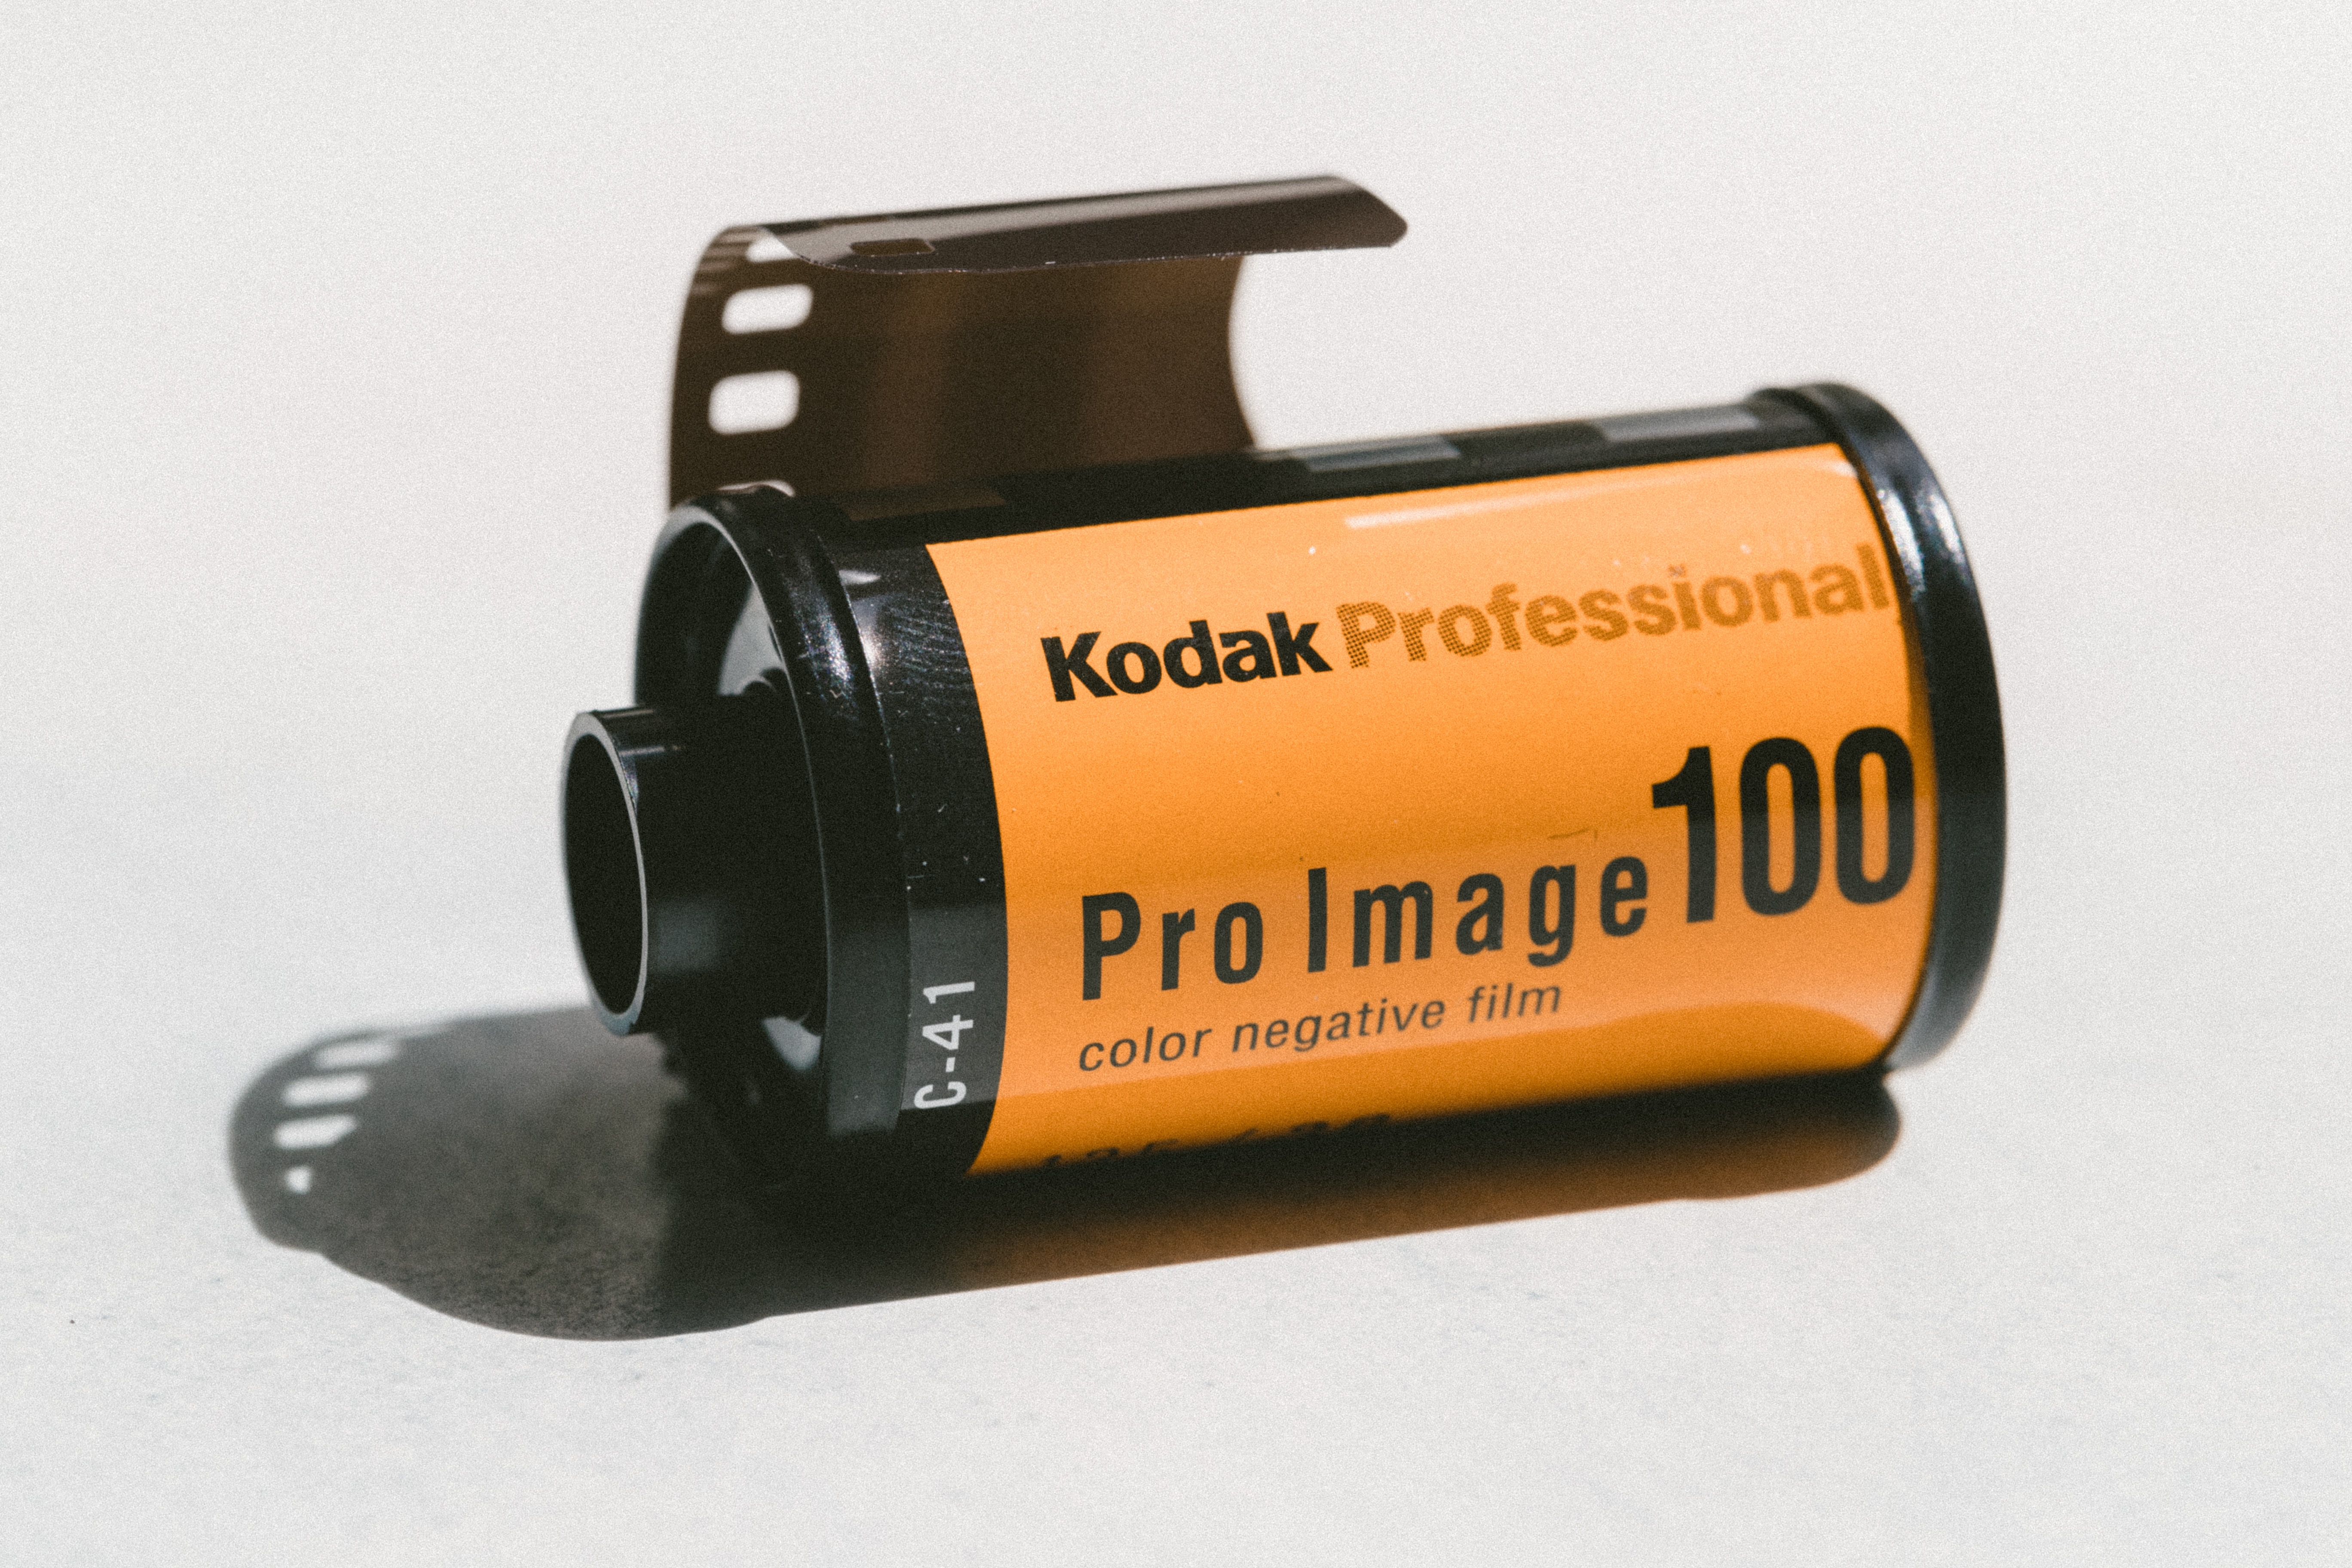 Kodak Professional Pro Image 100 color negative film canister with film peeking out